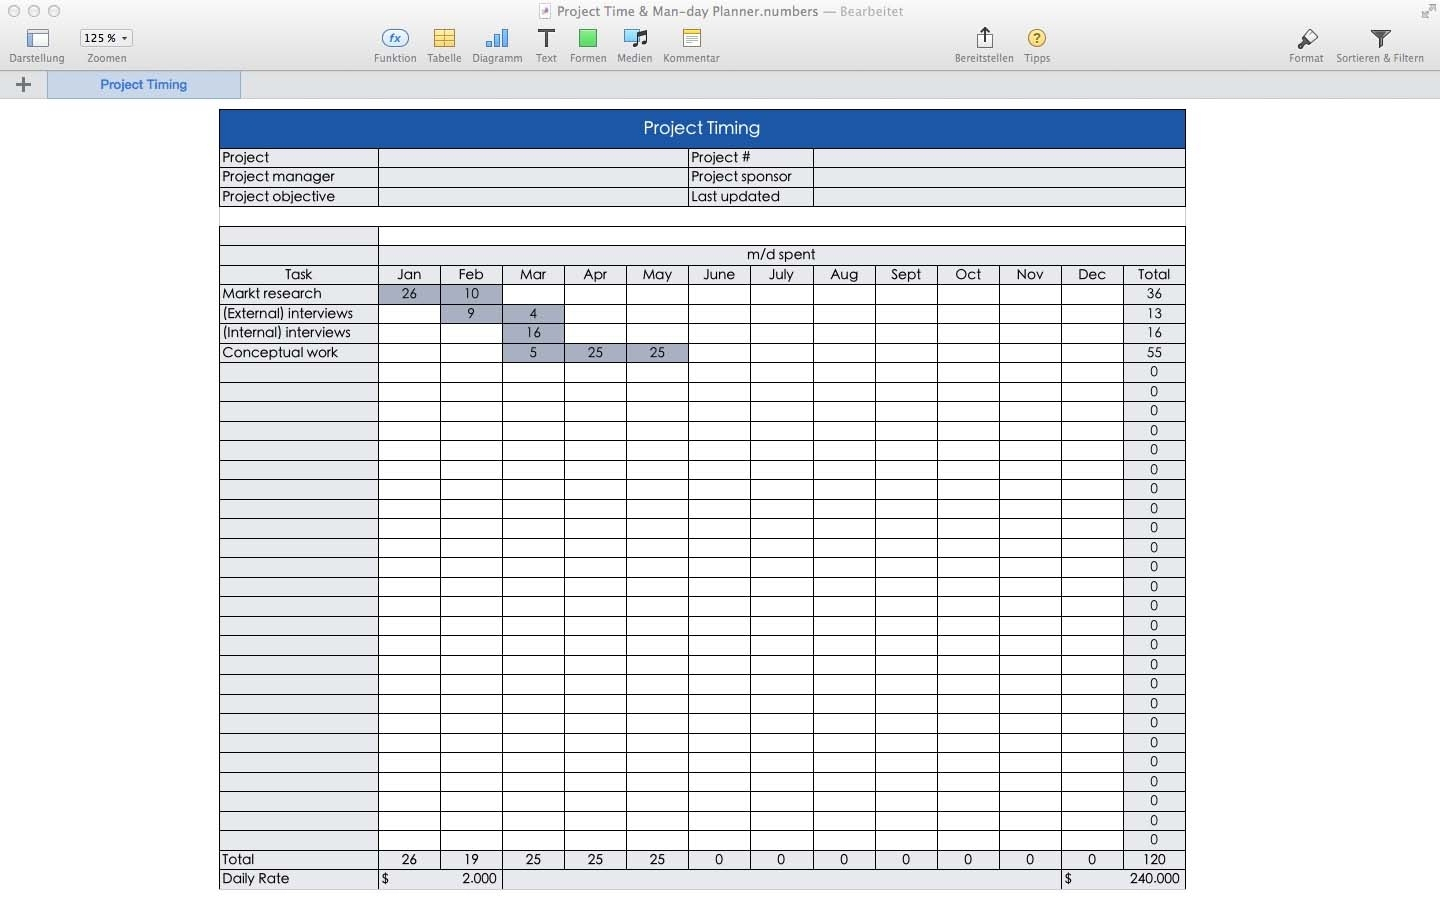 Project Management Timeline Template For Mac   Projectspyral For Project Management Templates Mac